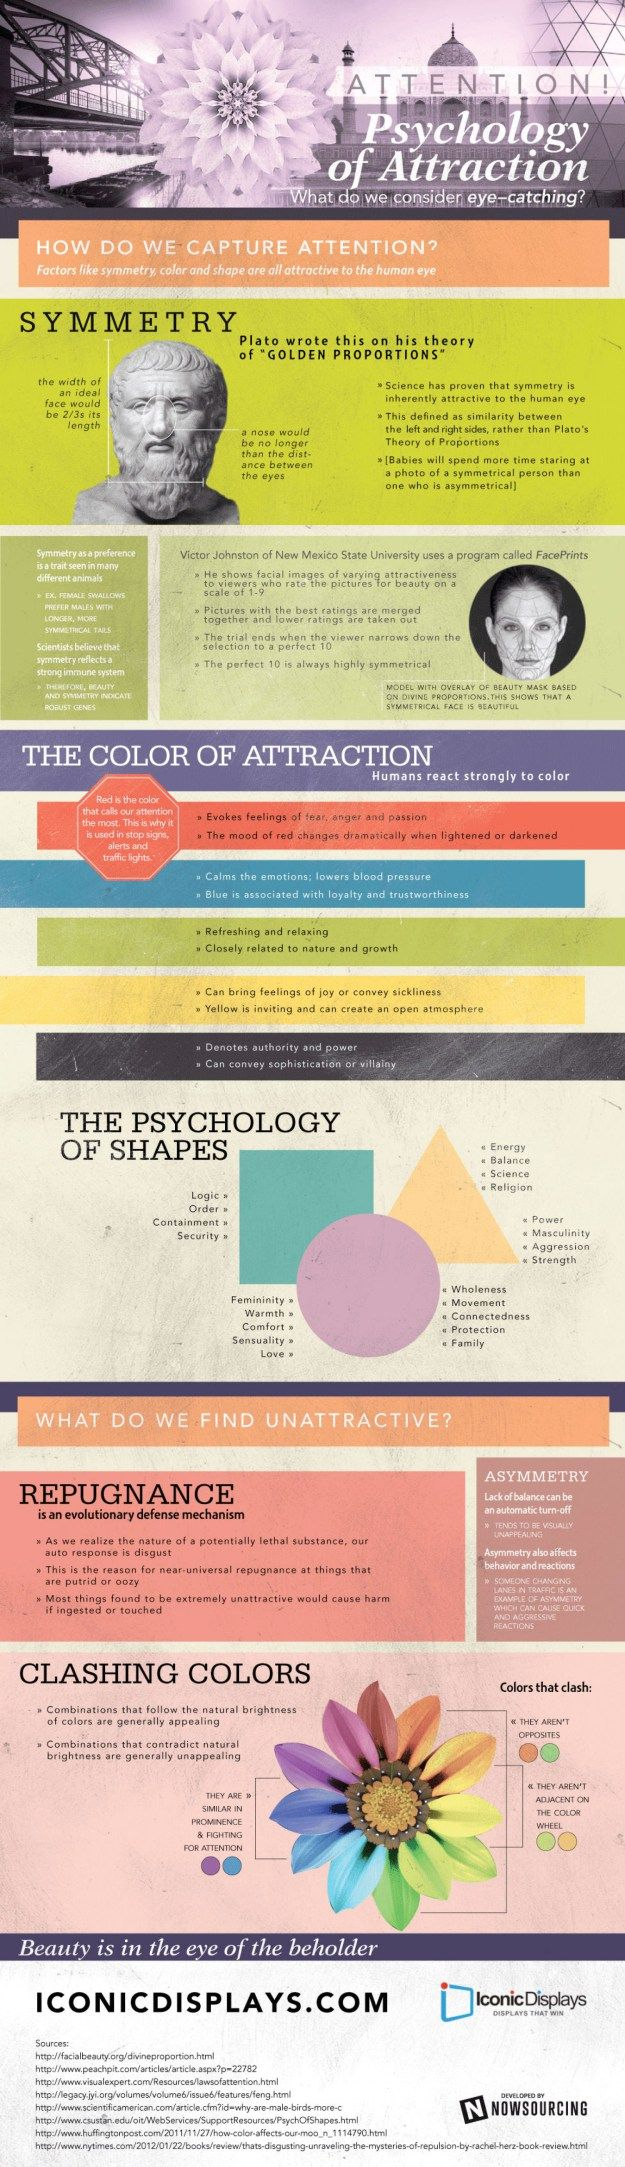 What Is Considered Eye-Catching? The Psychology of Attraction